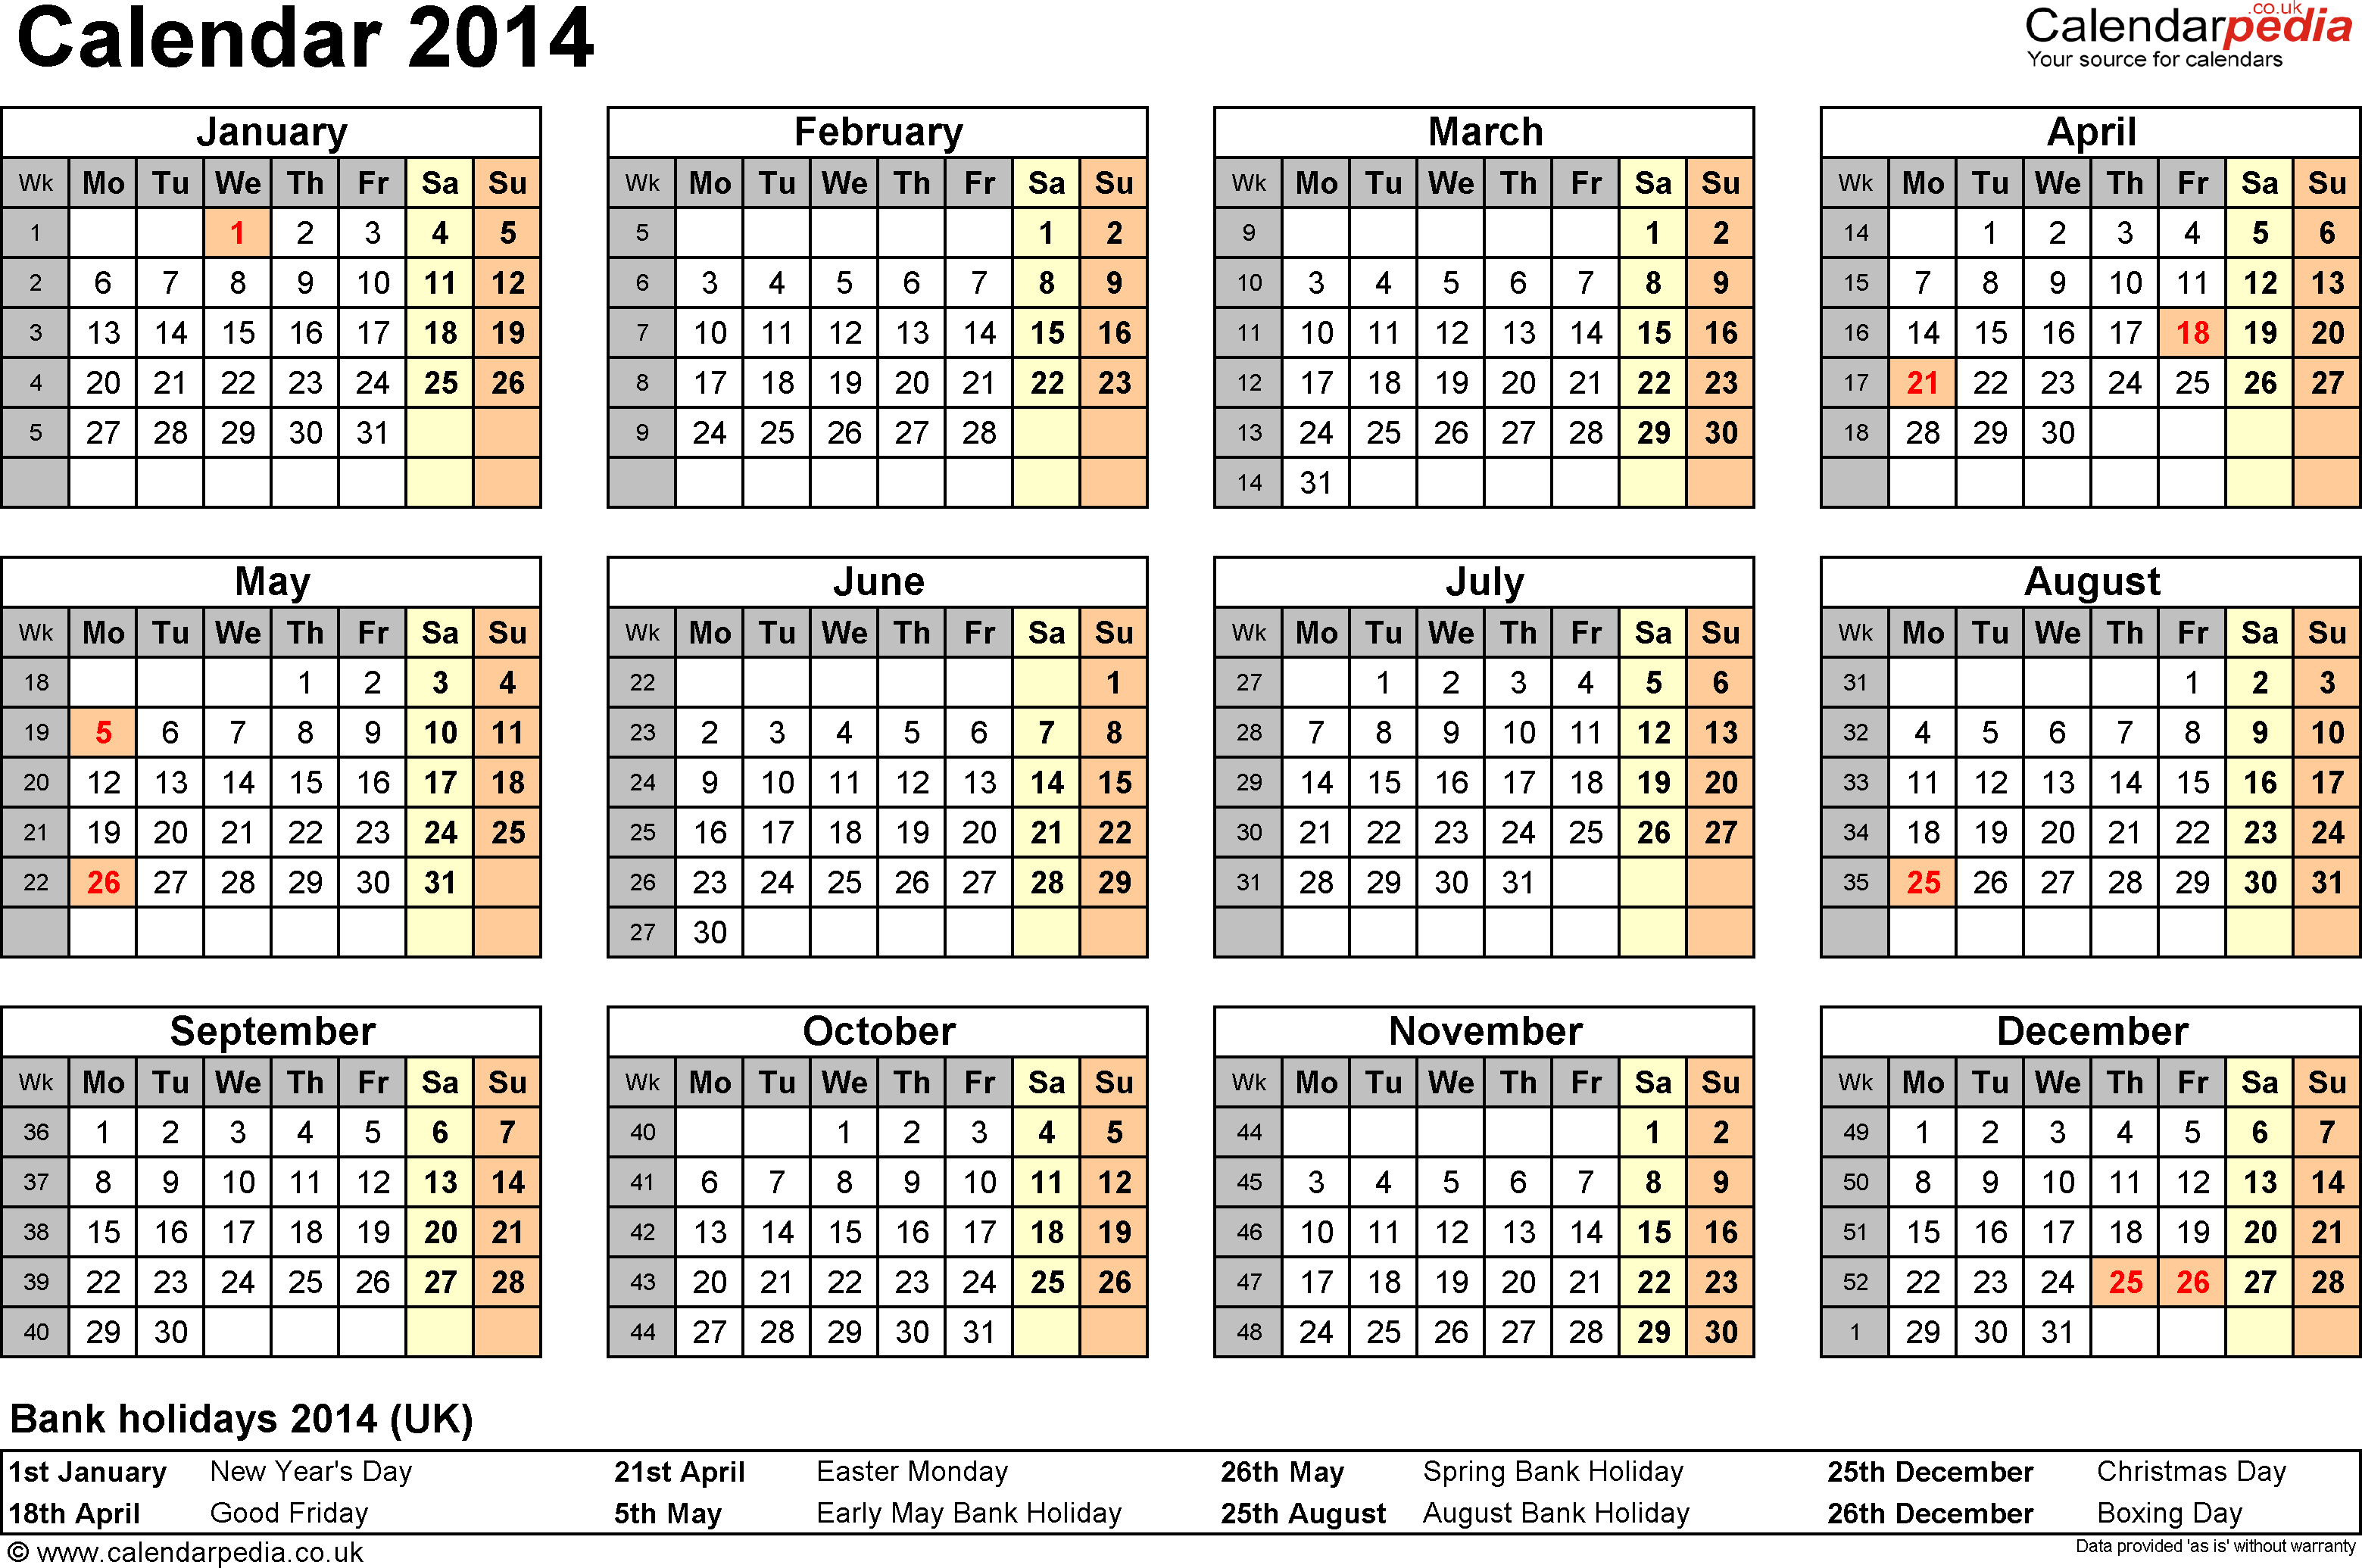 Calendar 2014 (UK) as Word templates in 15 different versions